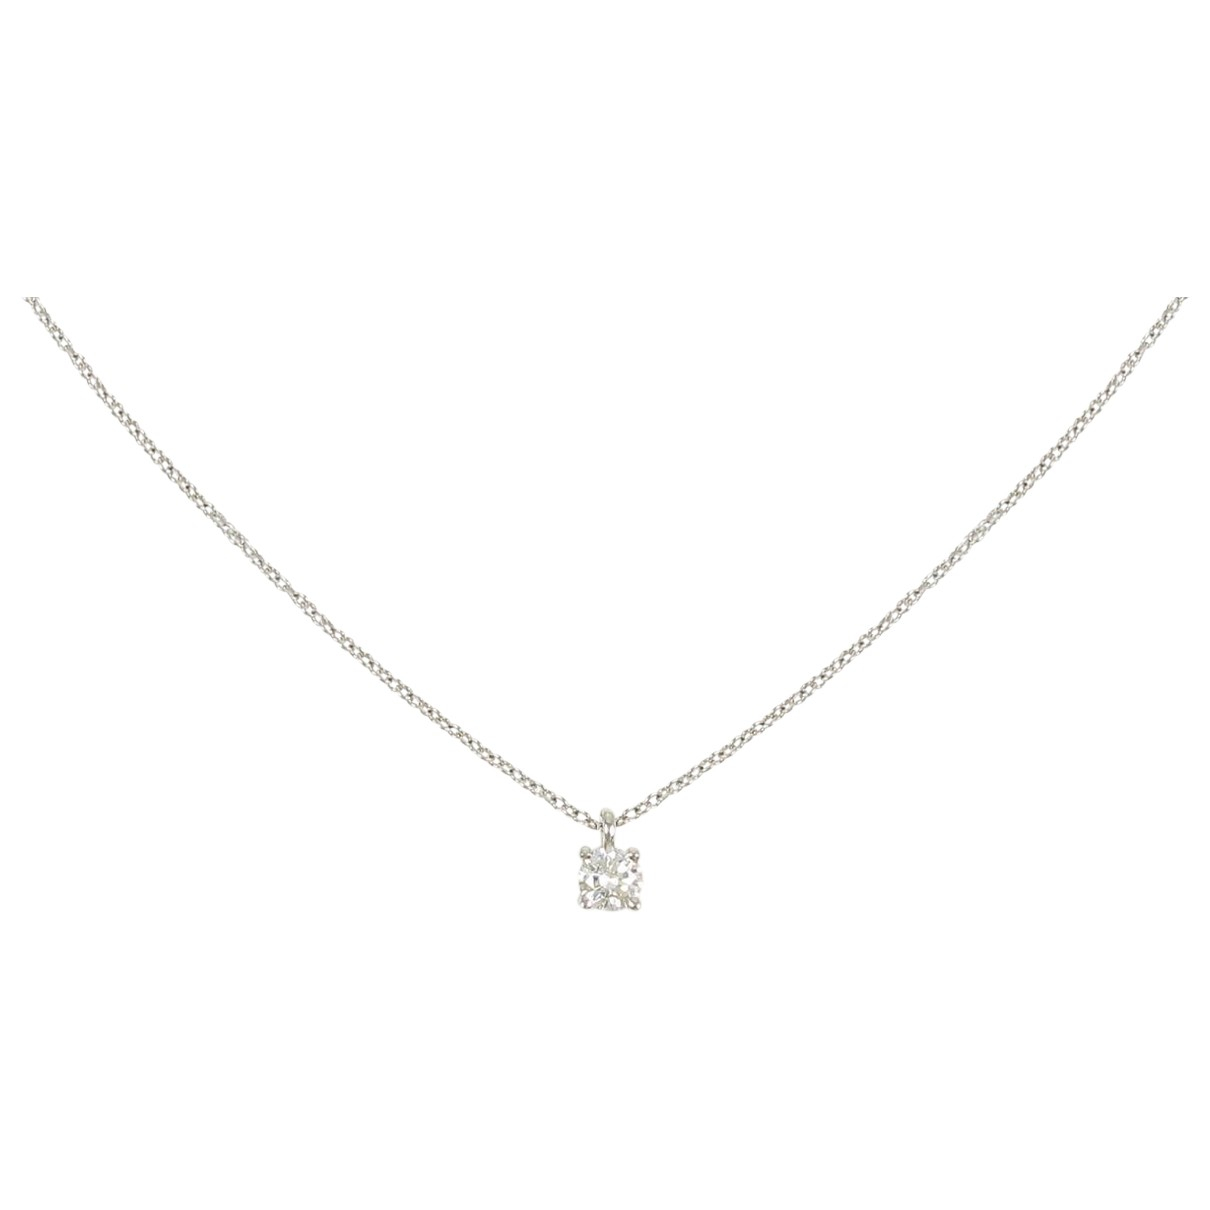 Tiffany & Co \N Kette in  Silber Platin